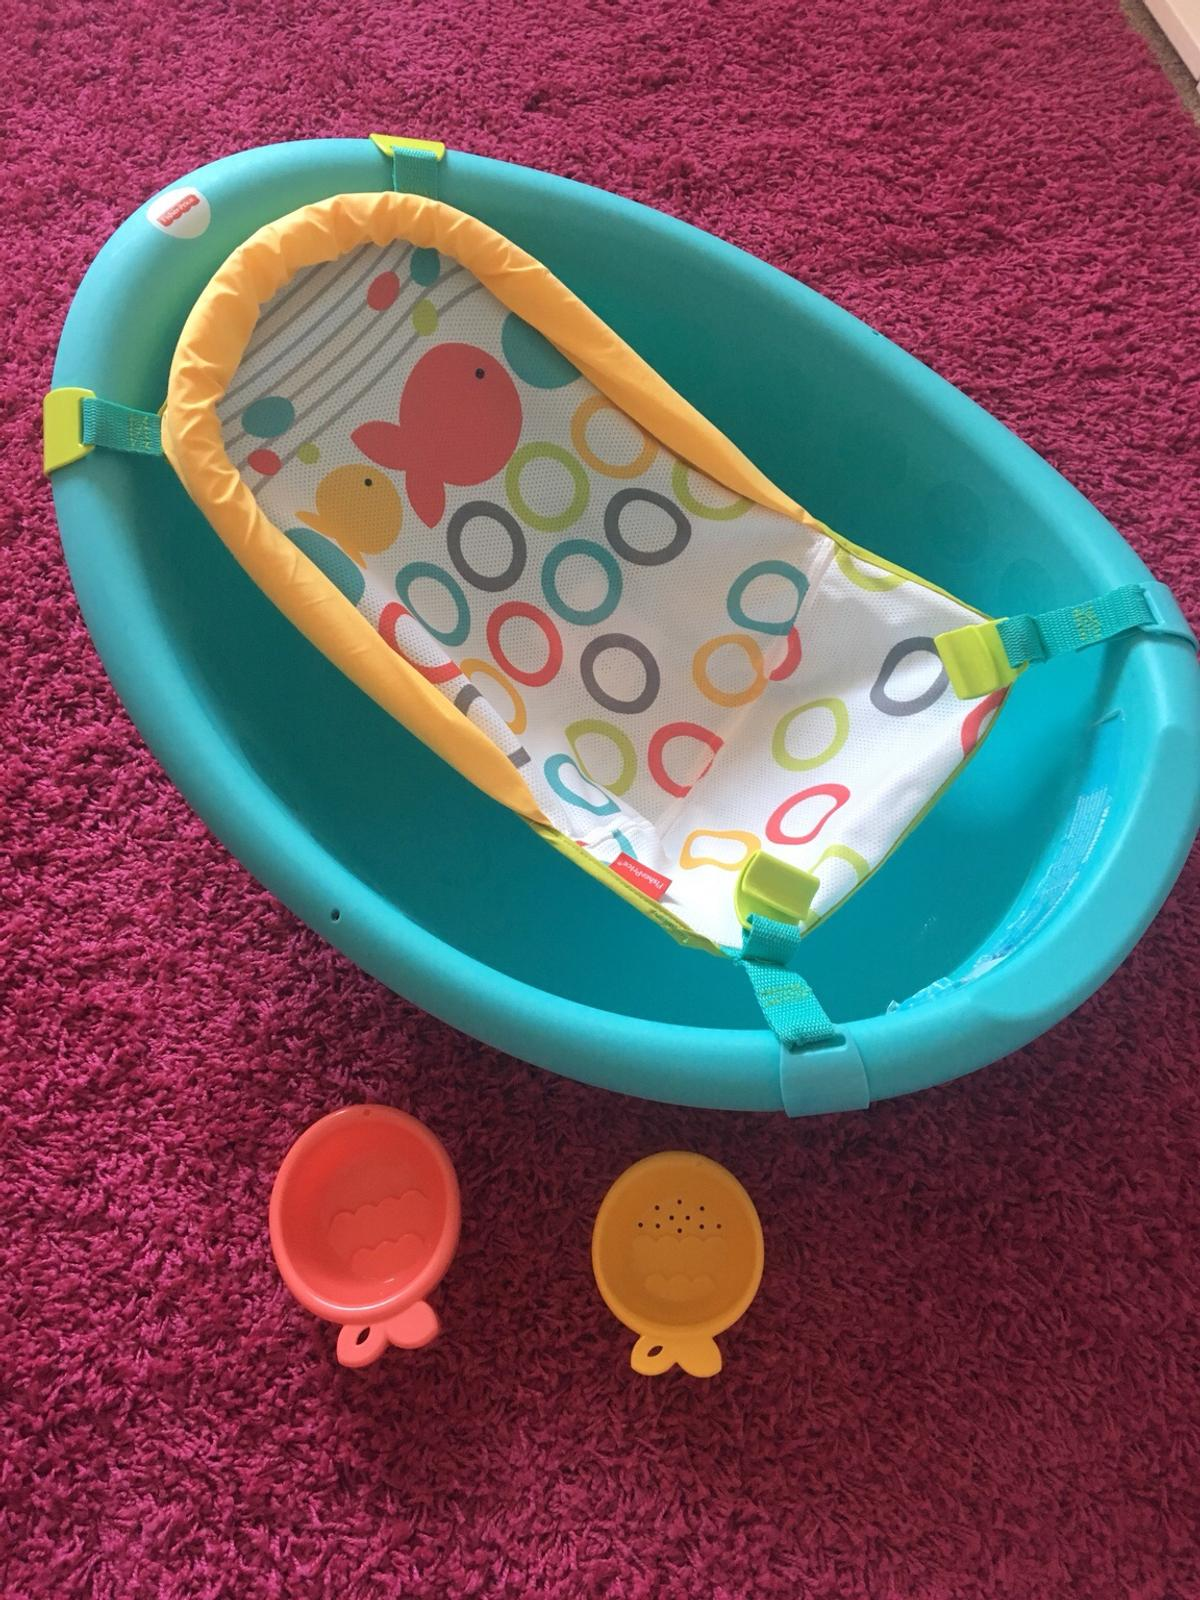 Fisher Price Rinse N Grow Baby Bath Tub In Gu11 Rushmoor For 12 00 For Sale Shpock